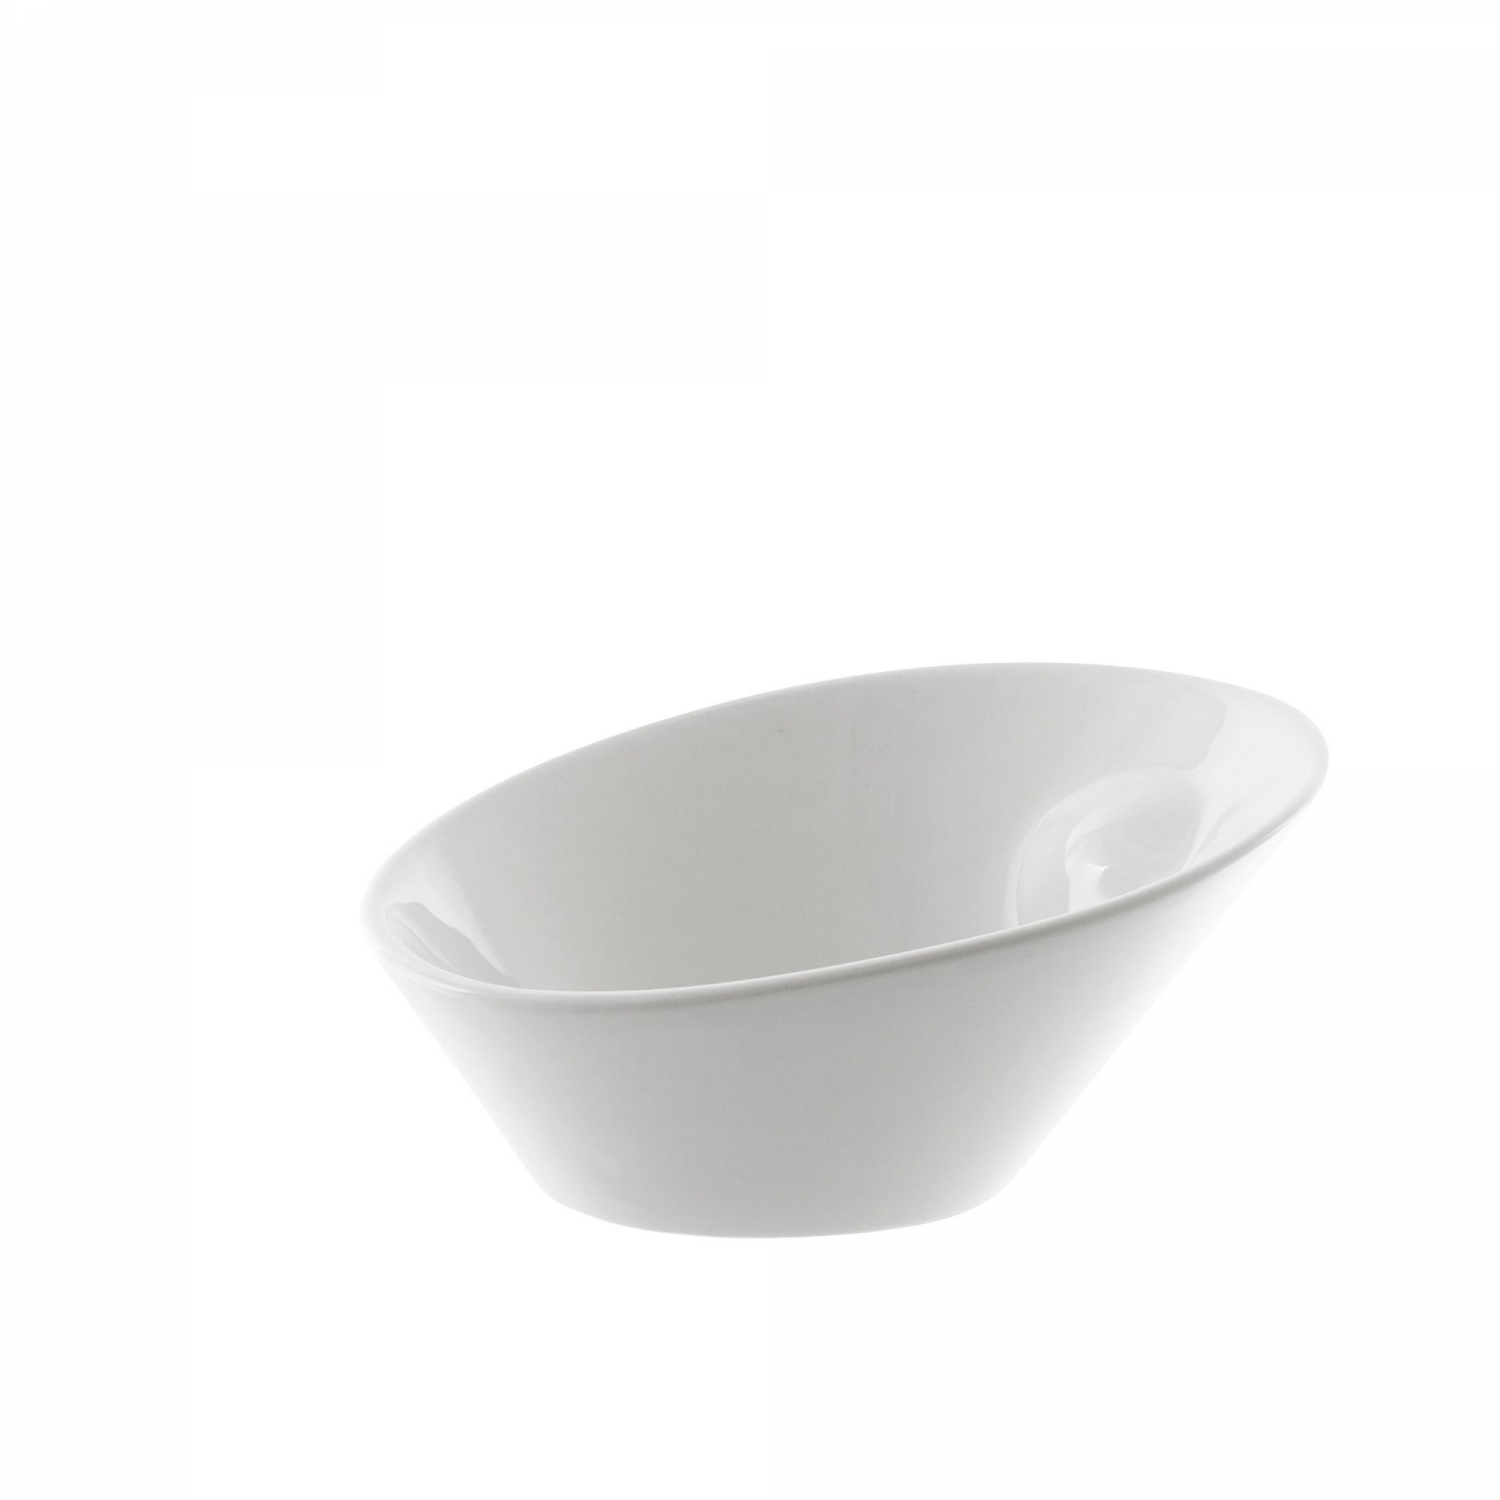 10 Strawberry Street WTR-8PNCHBWL Whittier Pinch Bowl 12 oz.